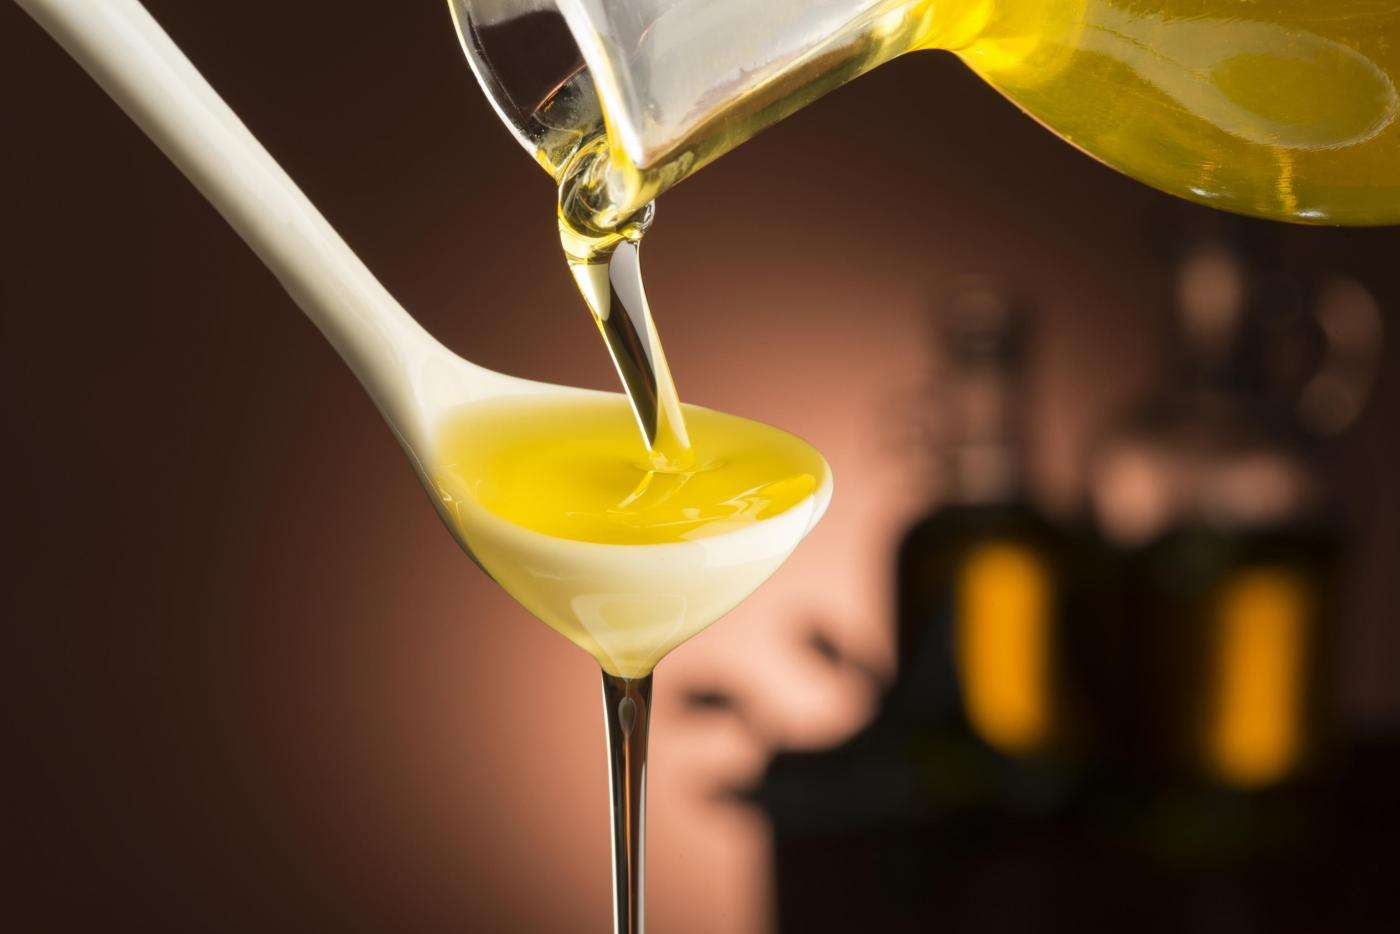 Two tablespoons of Olive Oil a day for good health